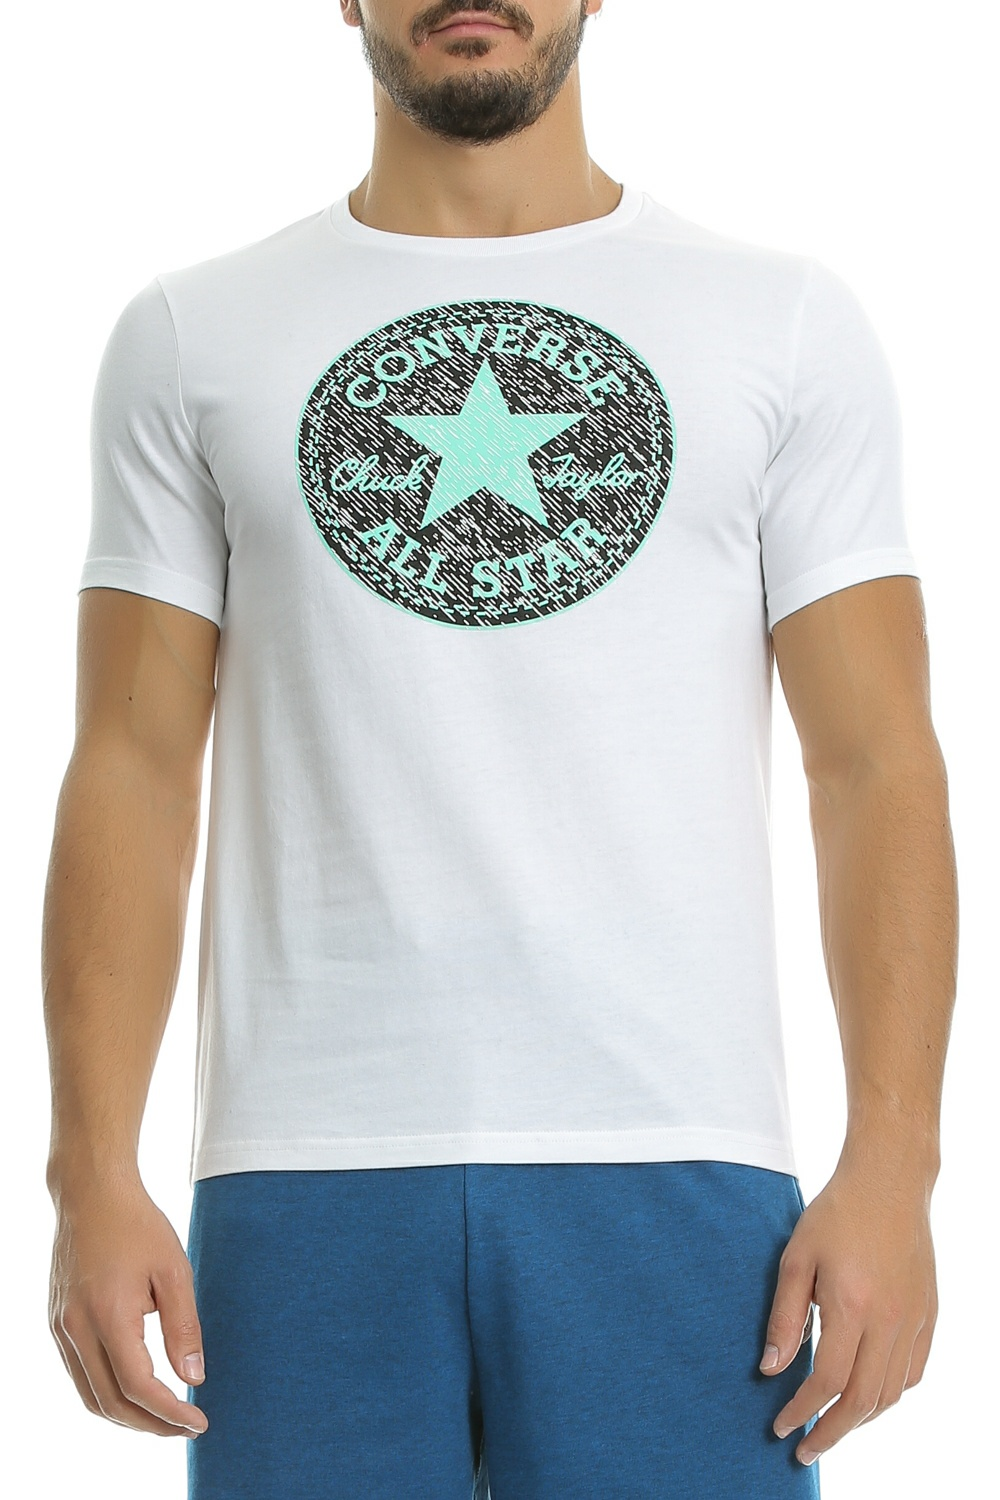 CONVERSE - Ανδρική μπλούζα CP Knit Texture Fill tee λευκή ανδρικά ρούχα αθλητικά t shirt